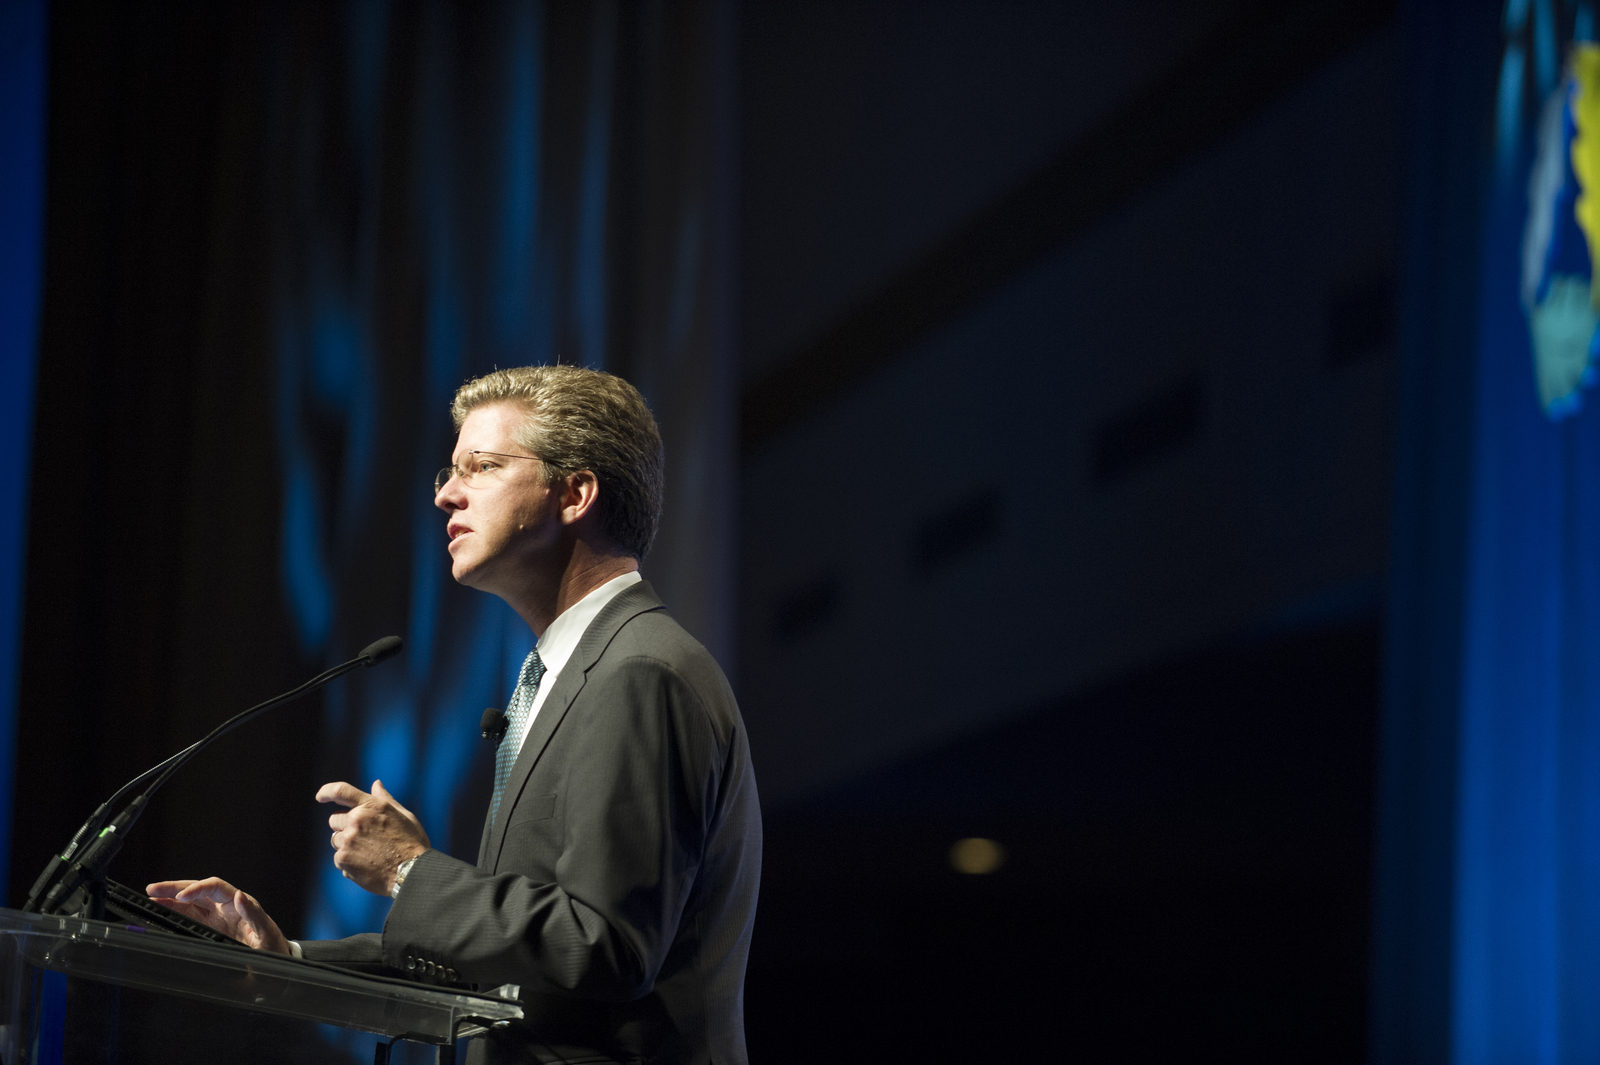 [U.S. Green Building Council-sponsored] Greenbuild International Conference and Expo [activities, in Philadelphia, Pennsylvania, including address by Secretary Shaun Donovan]